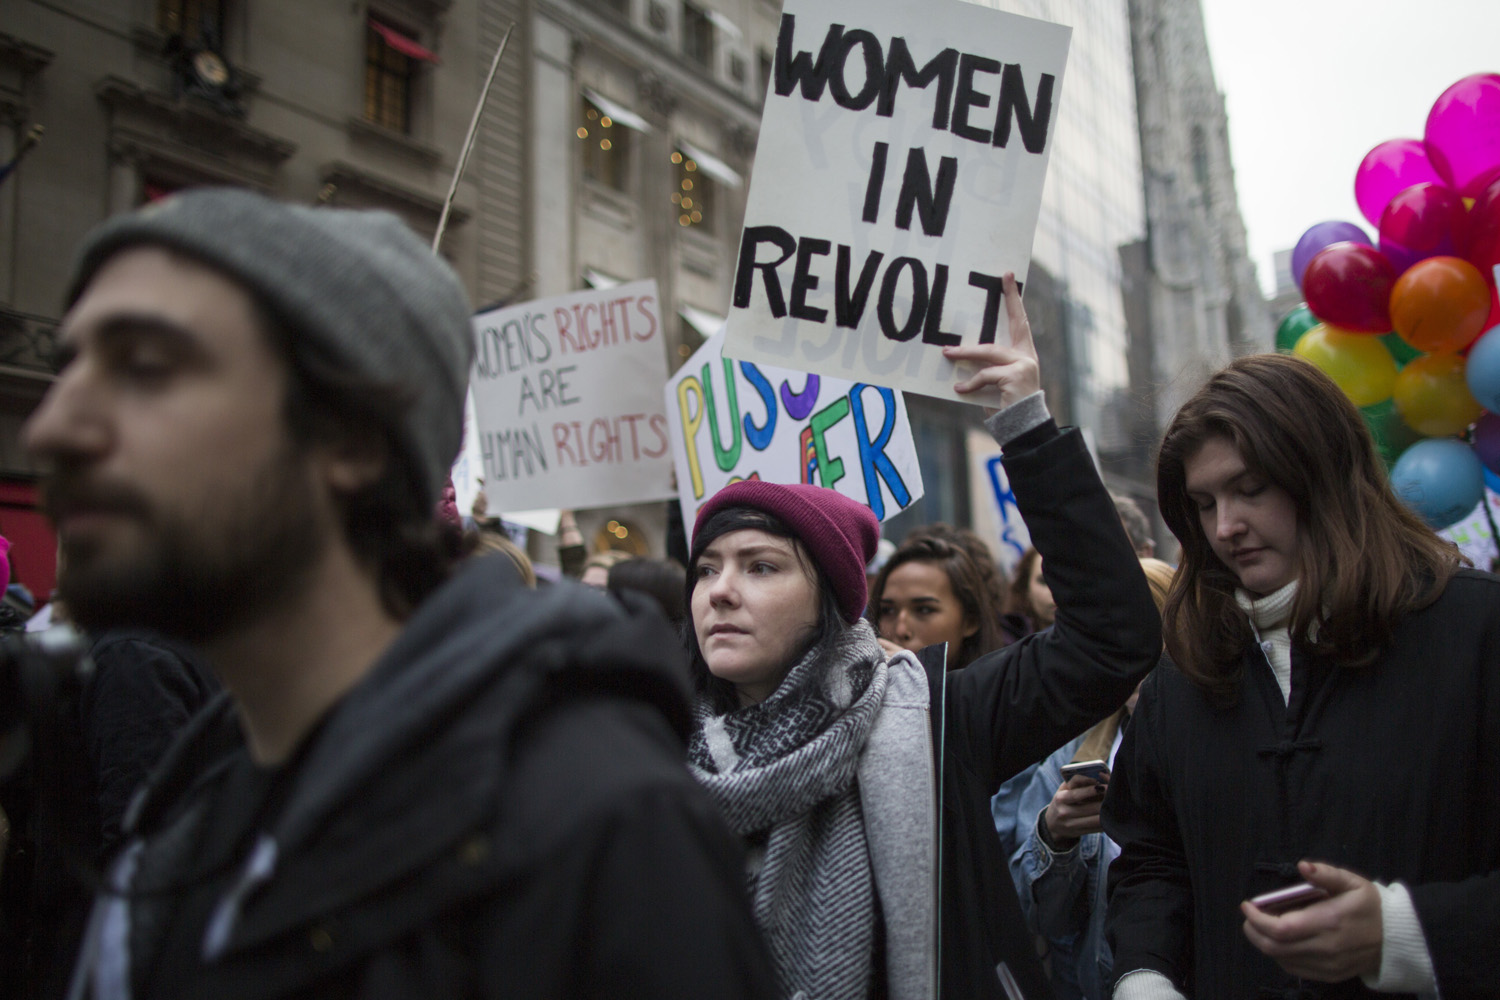 Demonstrators march up 5th Avenue during a women's march, Saturday, Jan. 21, 2017, in New York. (Mary Altaffer/AP)